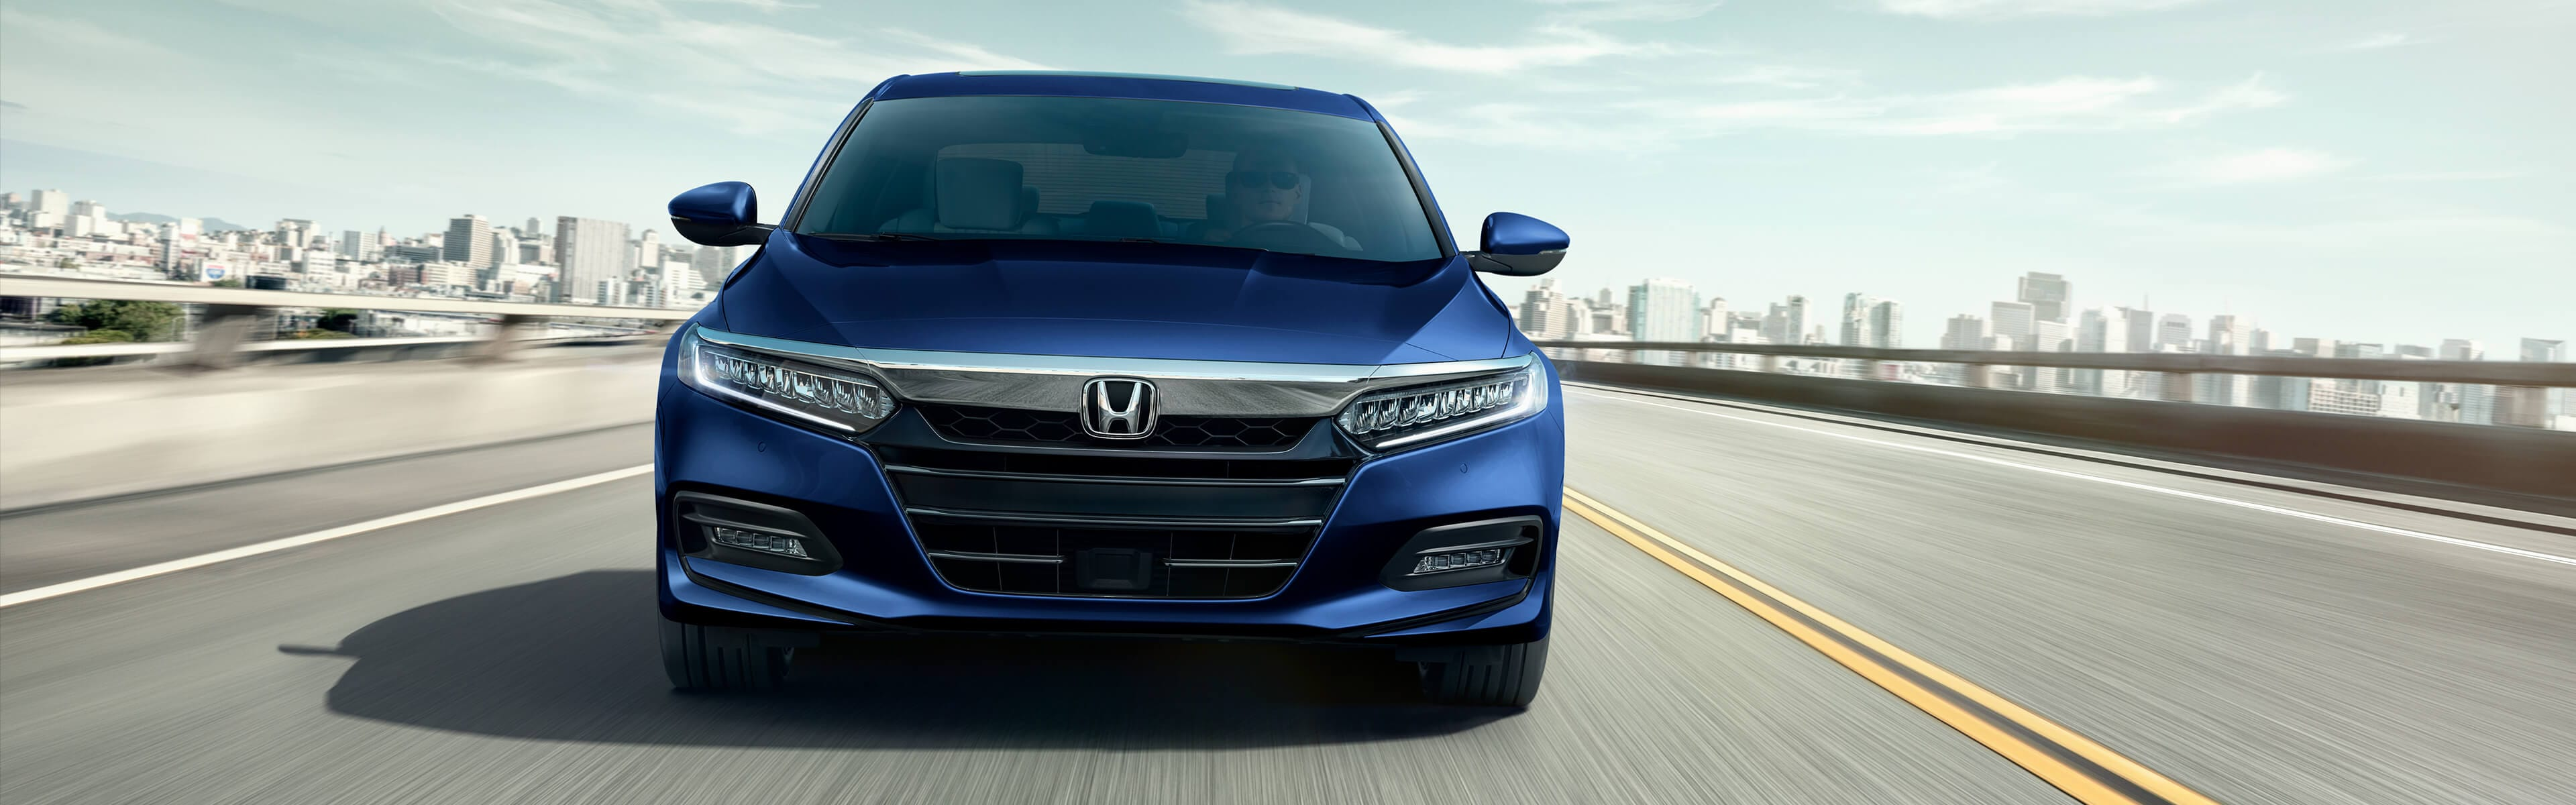 Image of 2018 Honda Accord front